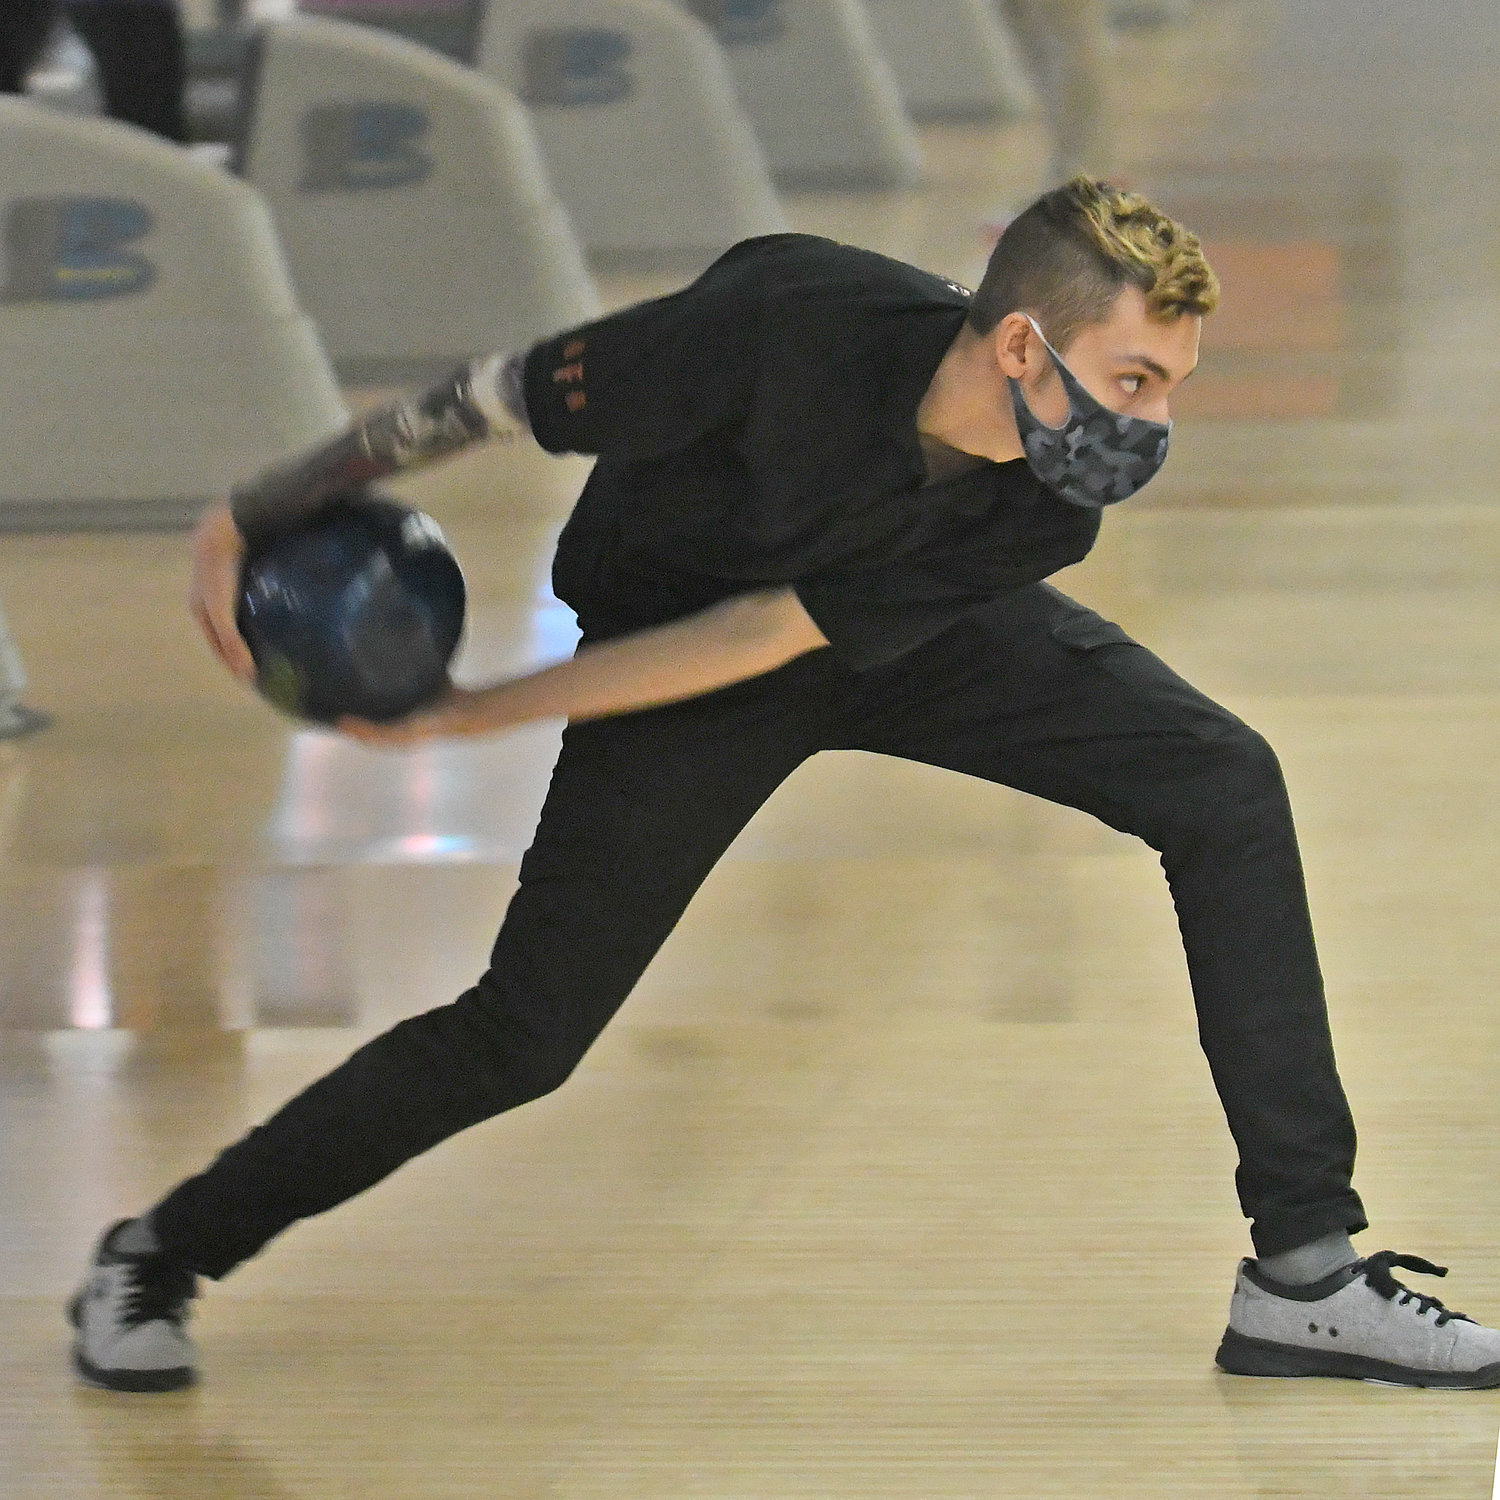 TVL HONOR — RFA senior bowler AJ Poole readies to roll his ball down the lane in a virtual match with Notre Dame on Feb. 9 at King Pin Lanes. Poole has been named a Tri-Valley League first team all-star.